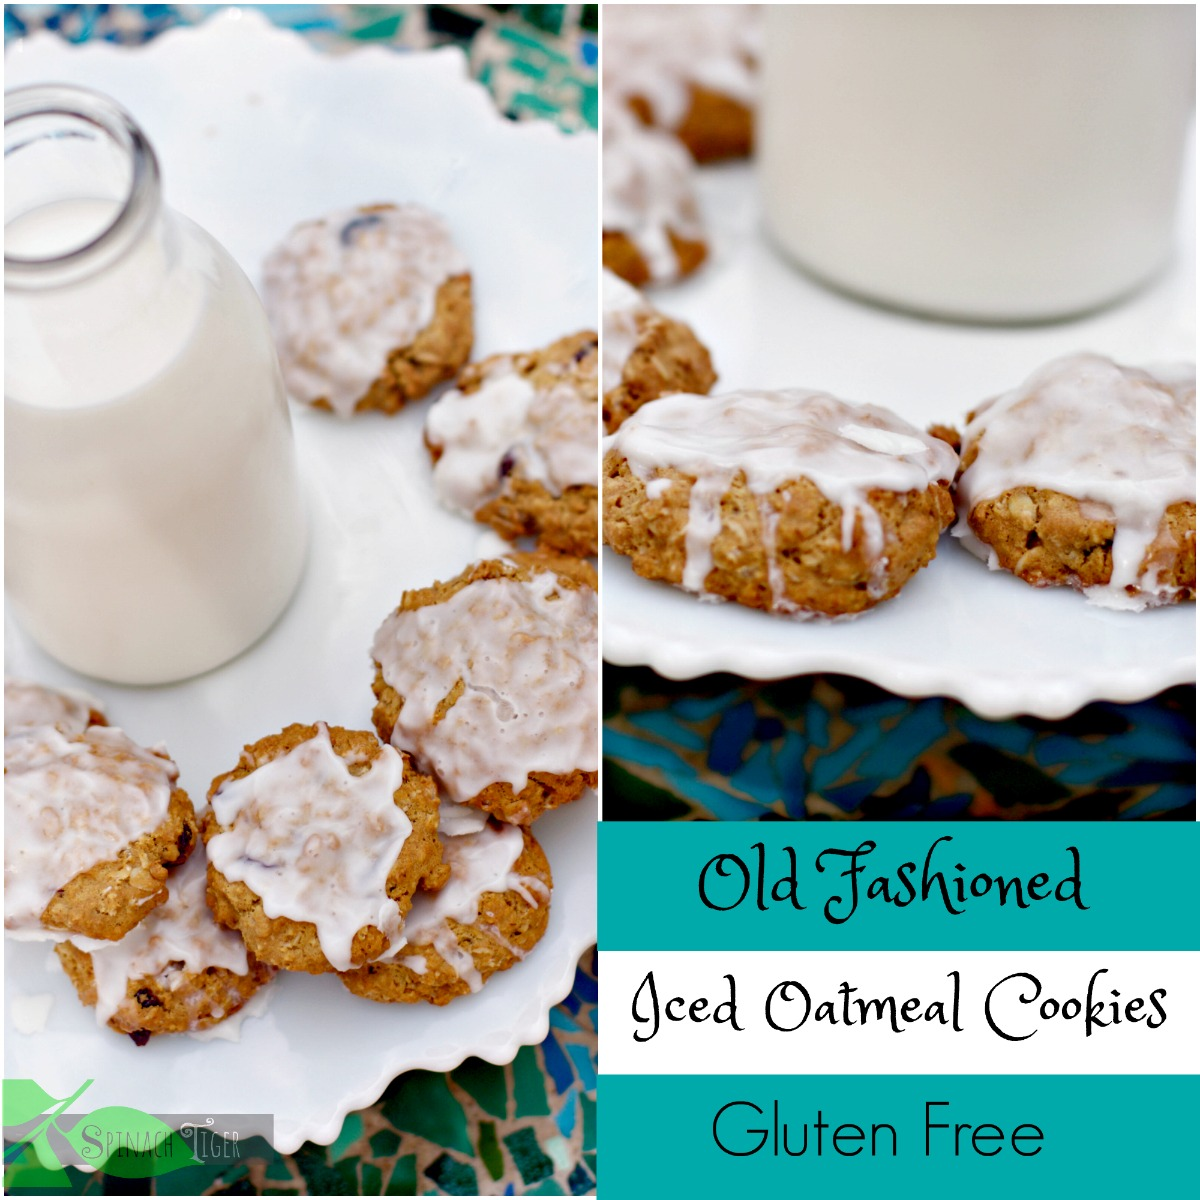 Gluten Free Oatmeal Cookies from Spinach Tiger